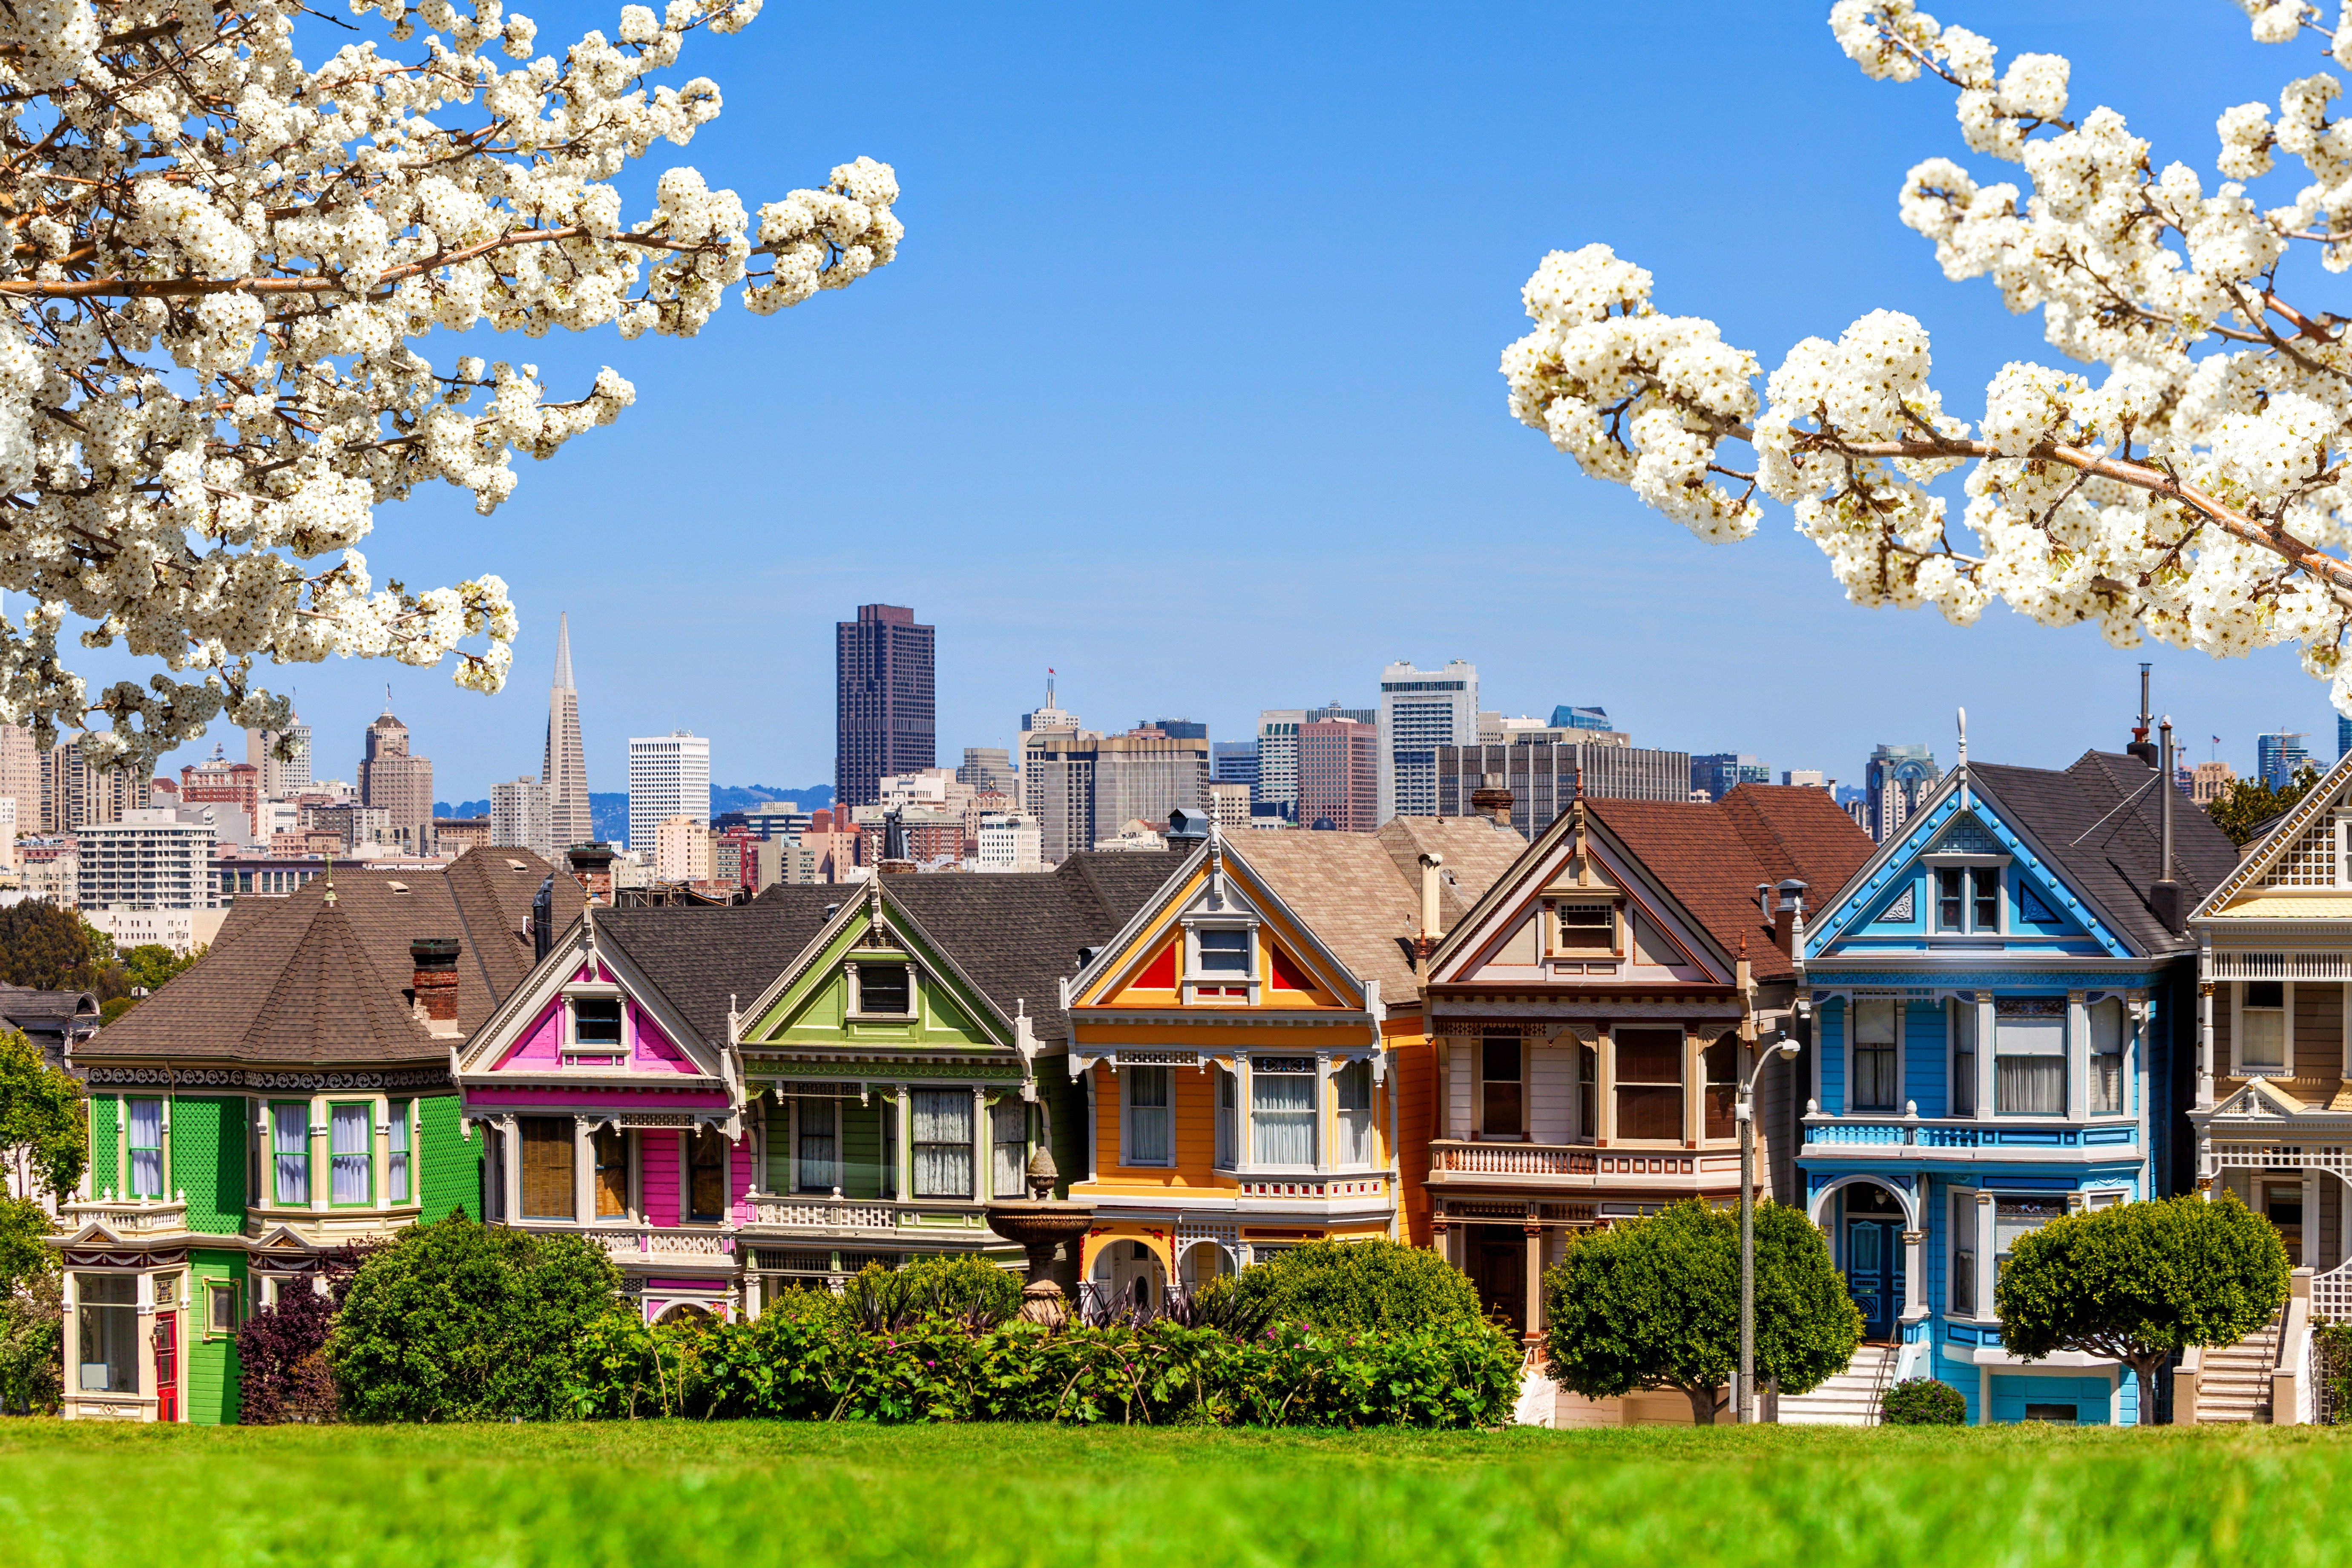 Enjoy a picnic in beautiful Alamo Park with a view of the popular 'Painted Ladies.'